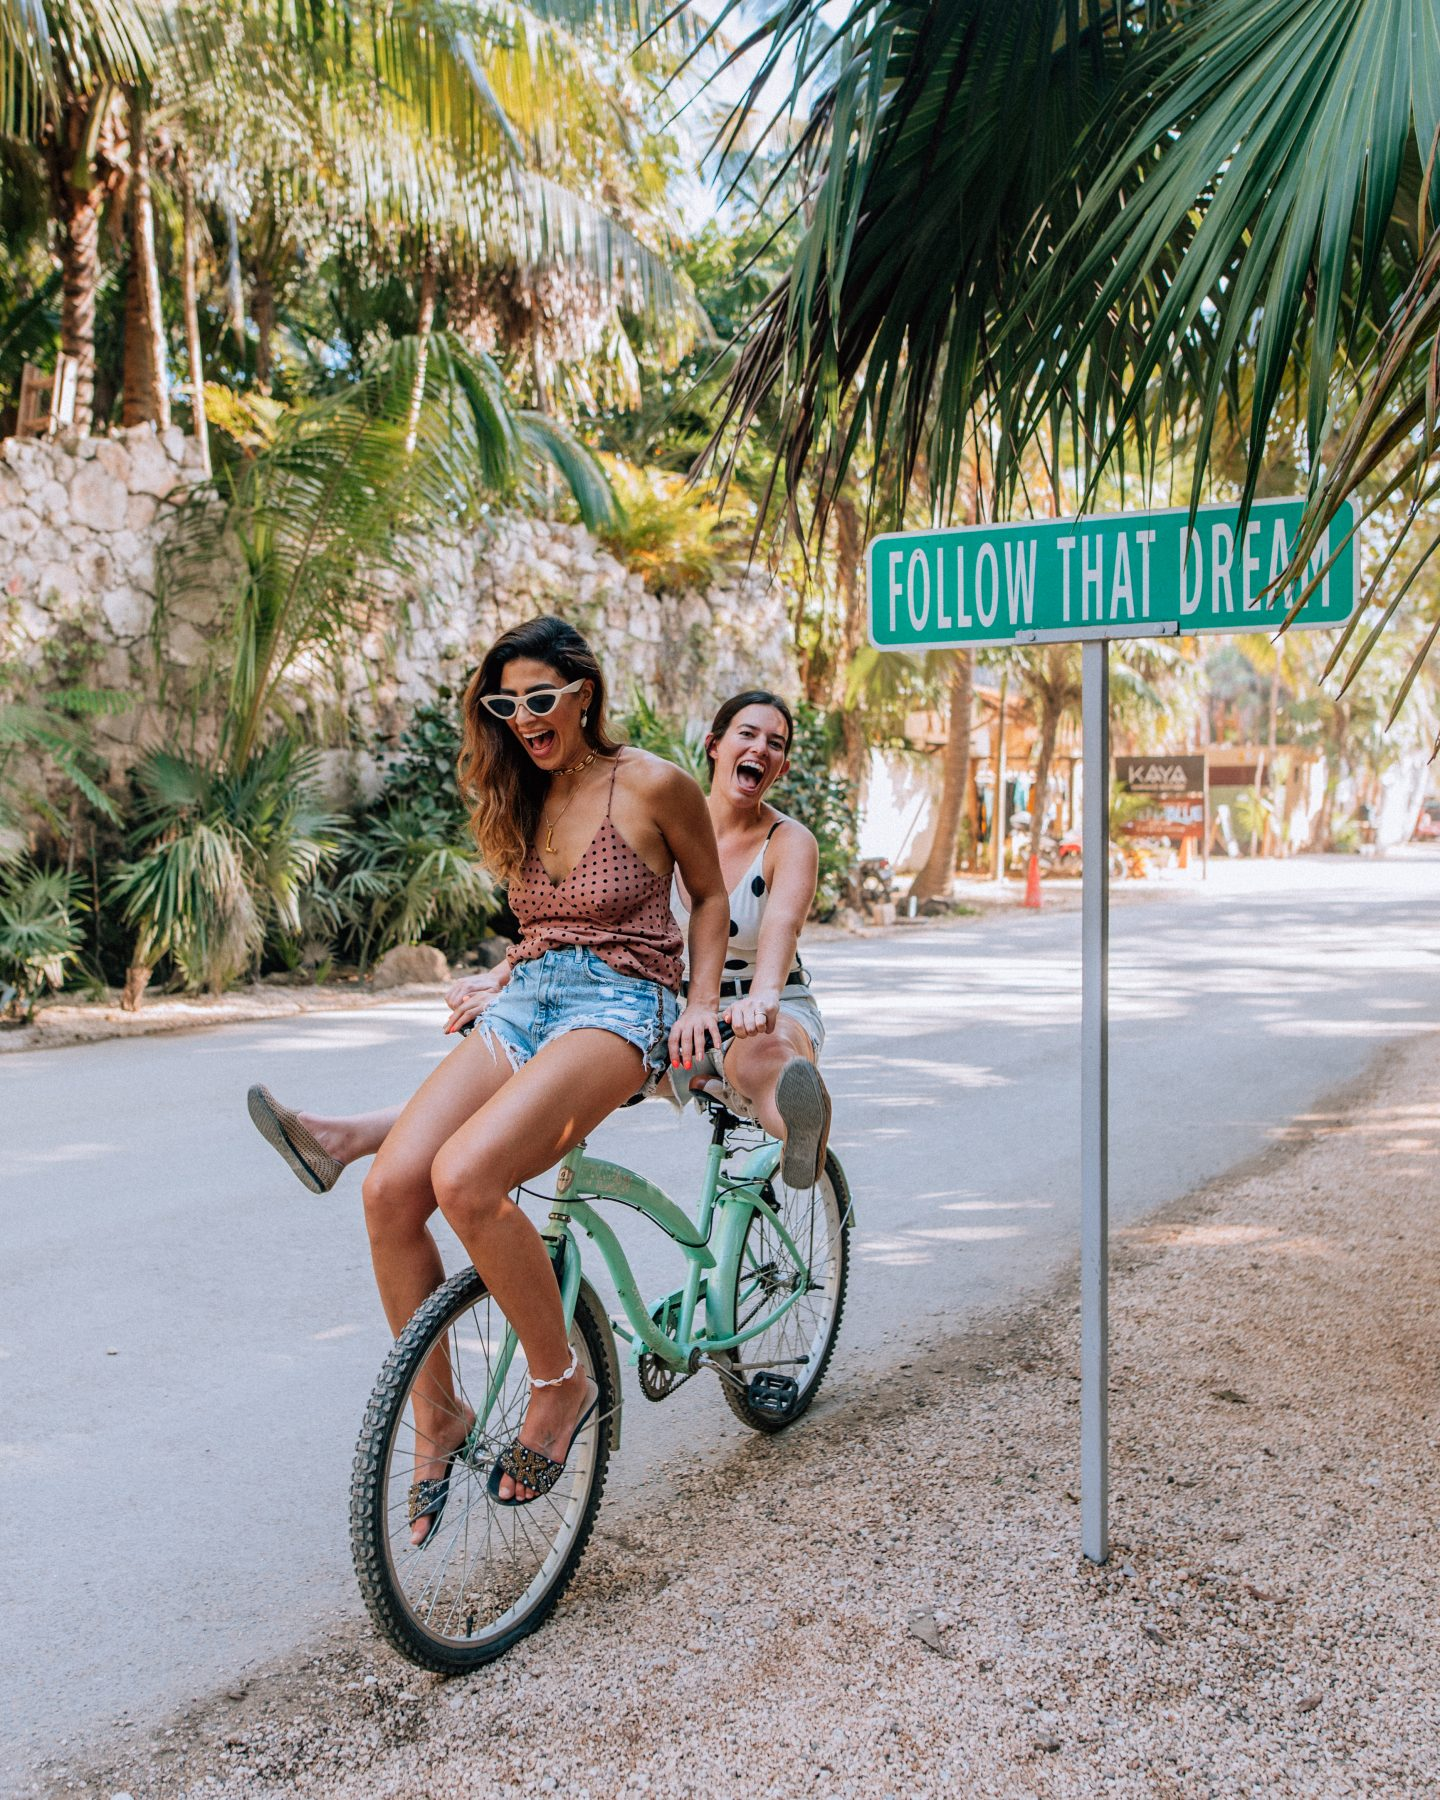 Girls trip in Tulum at the Follow That Dream sign